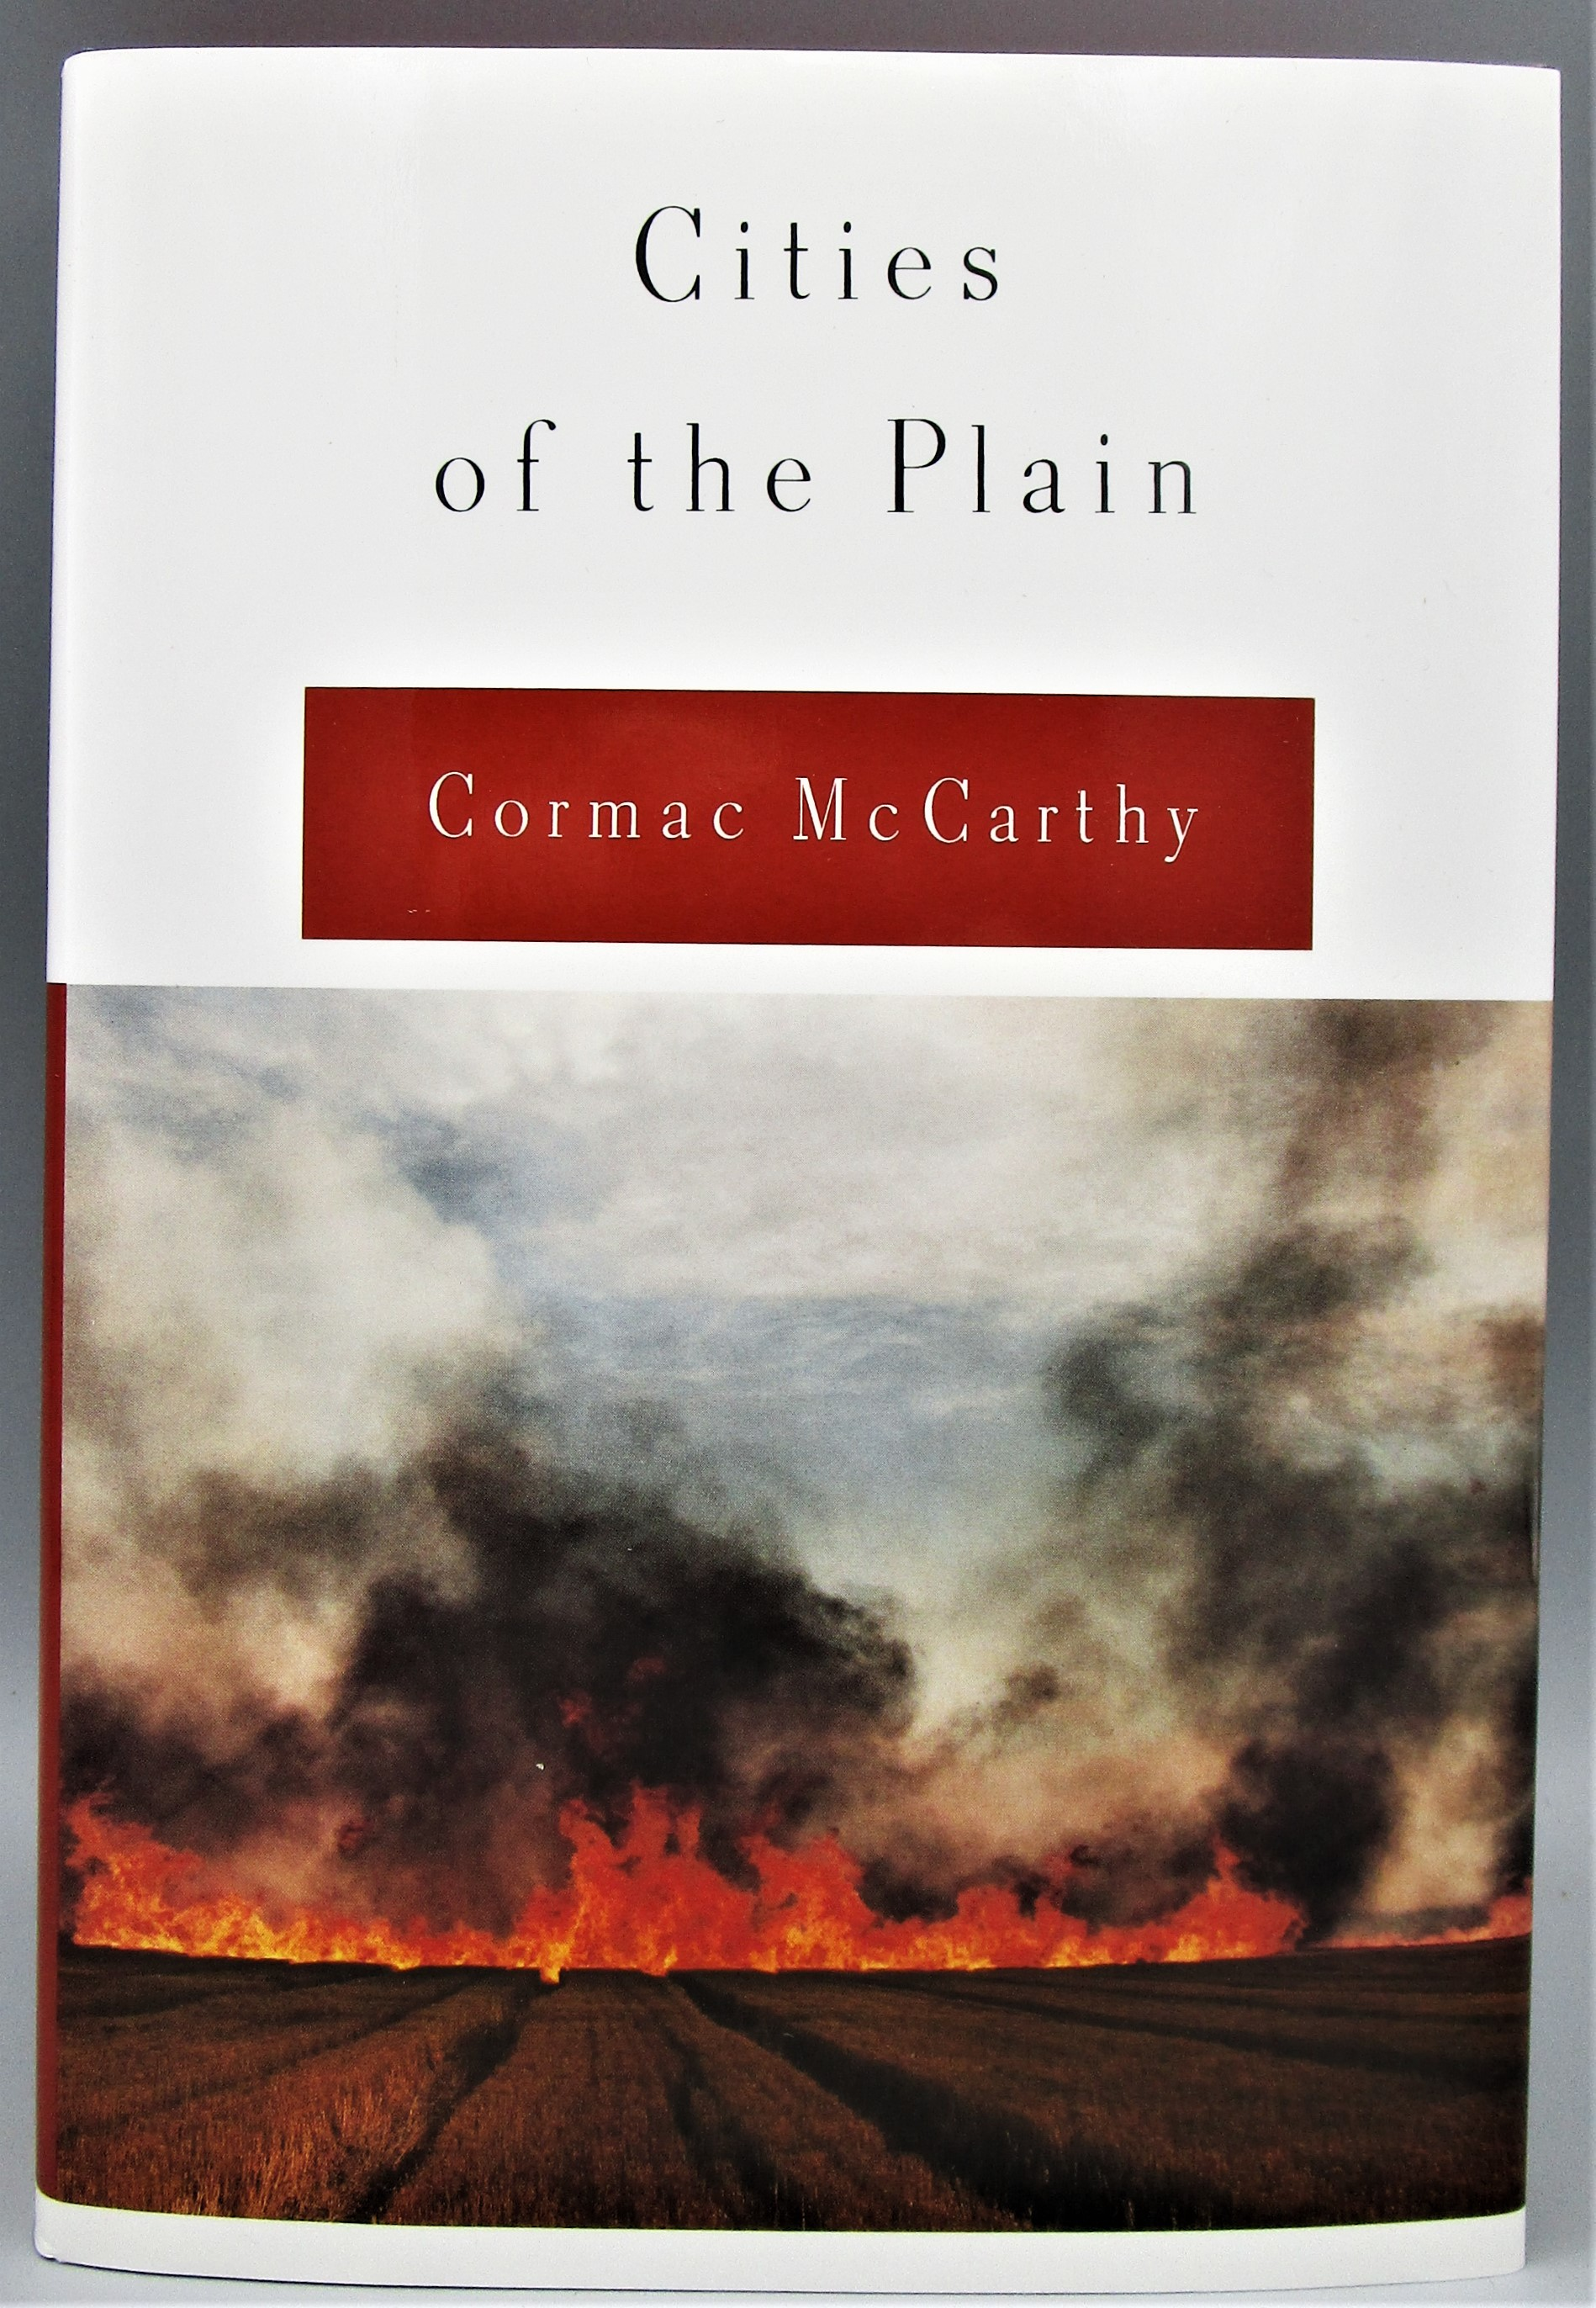 CITIES OF THE PLAIN, by Cormac McCarthy - 1998 [Signed Ltd Ed]